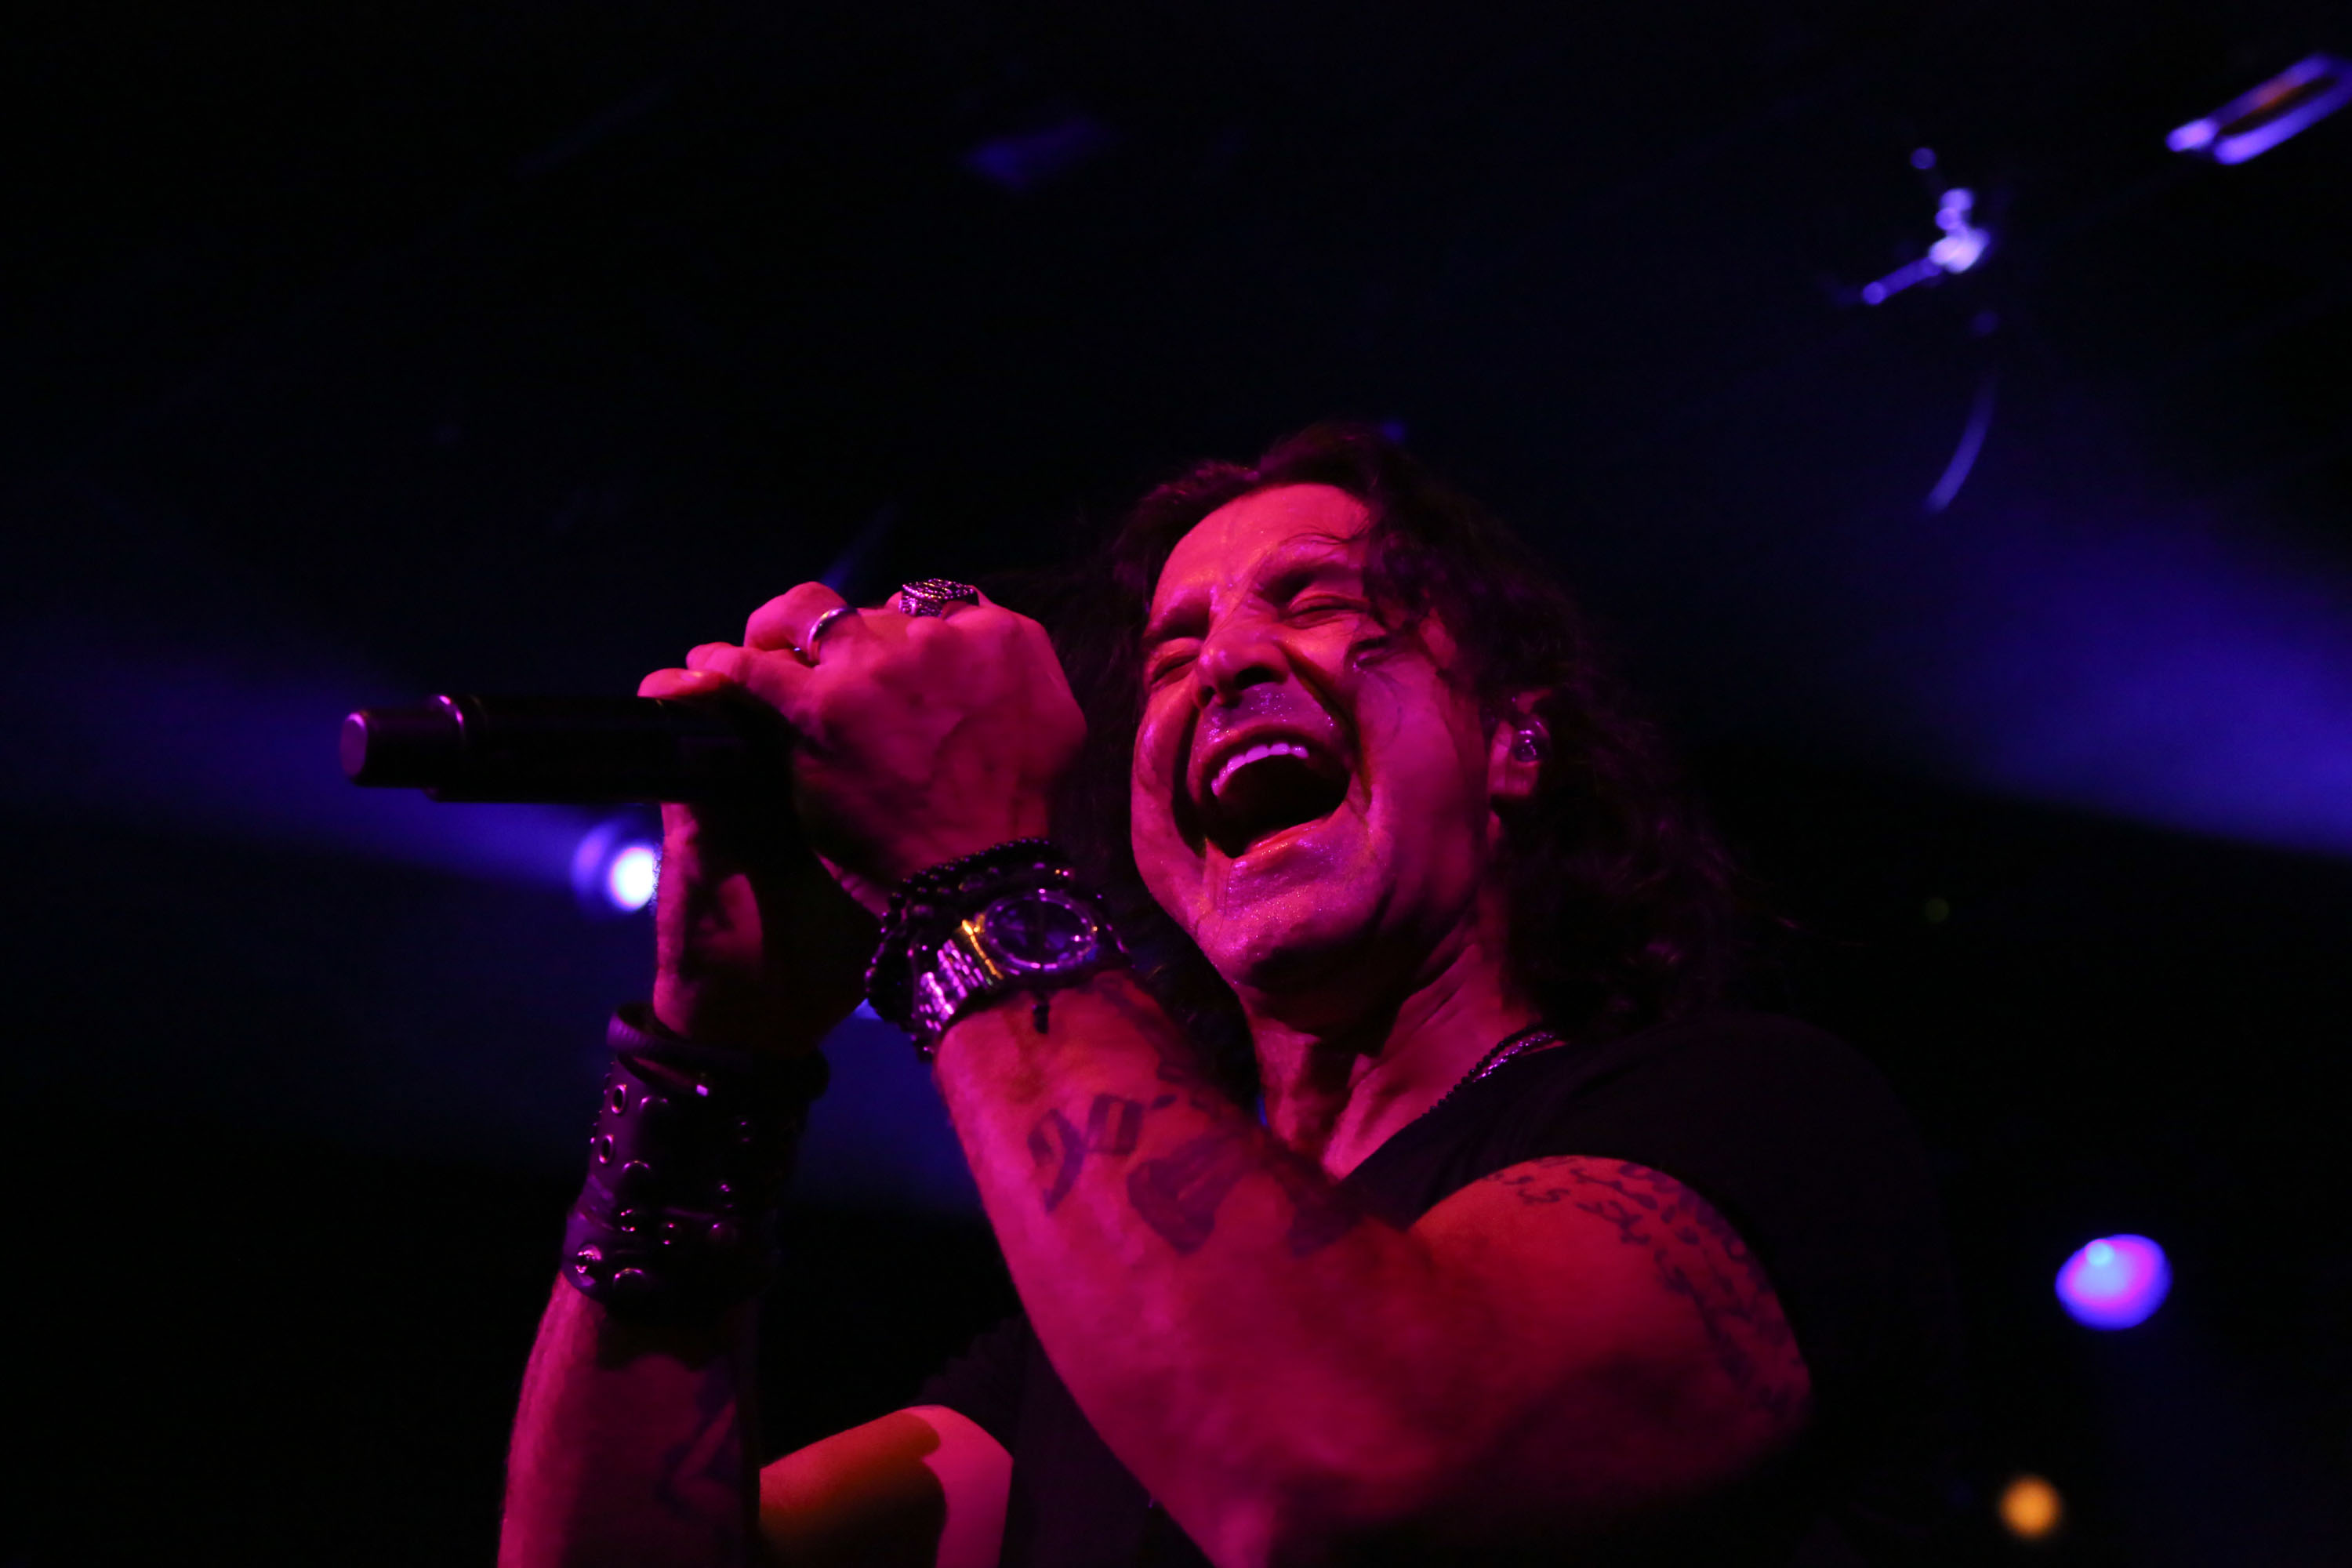 NEW YORK, NY - APRIL 02:  Scott Stapp performs at Irving Plaza on April 2, 2014 in New York City.  (Photo by Johnny Nunez/Wir